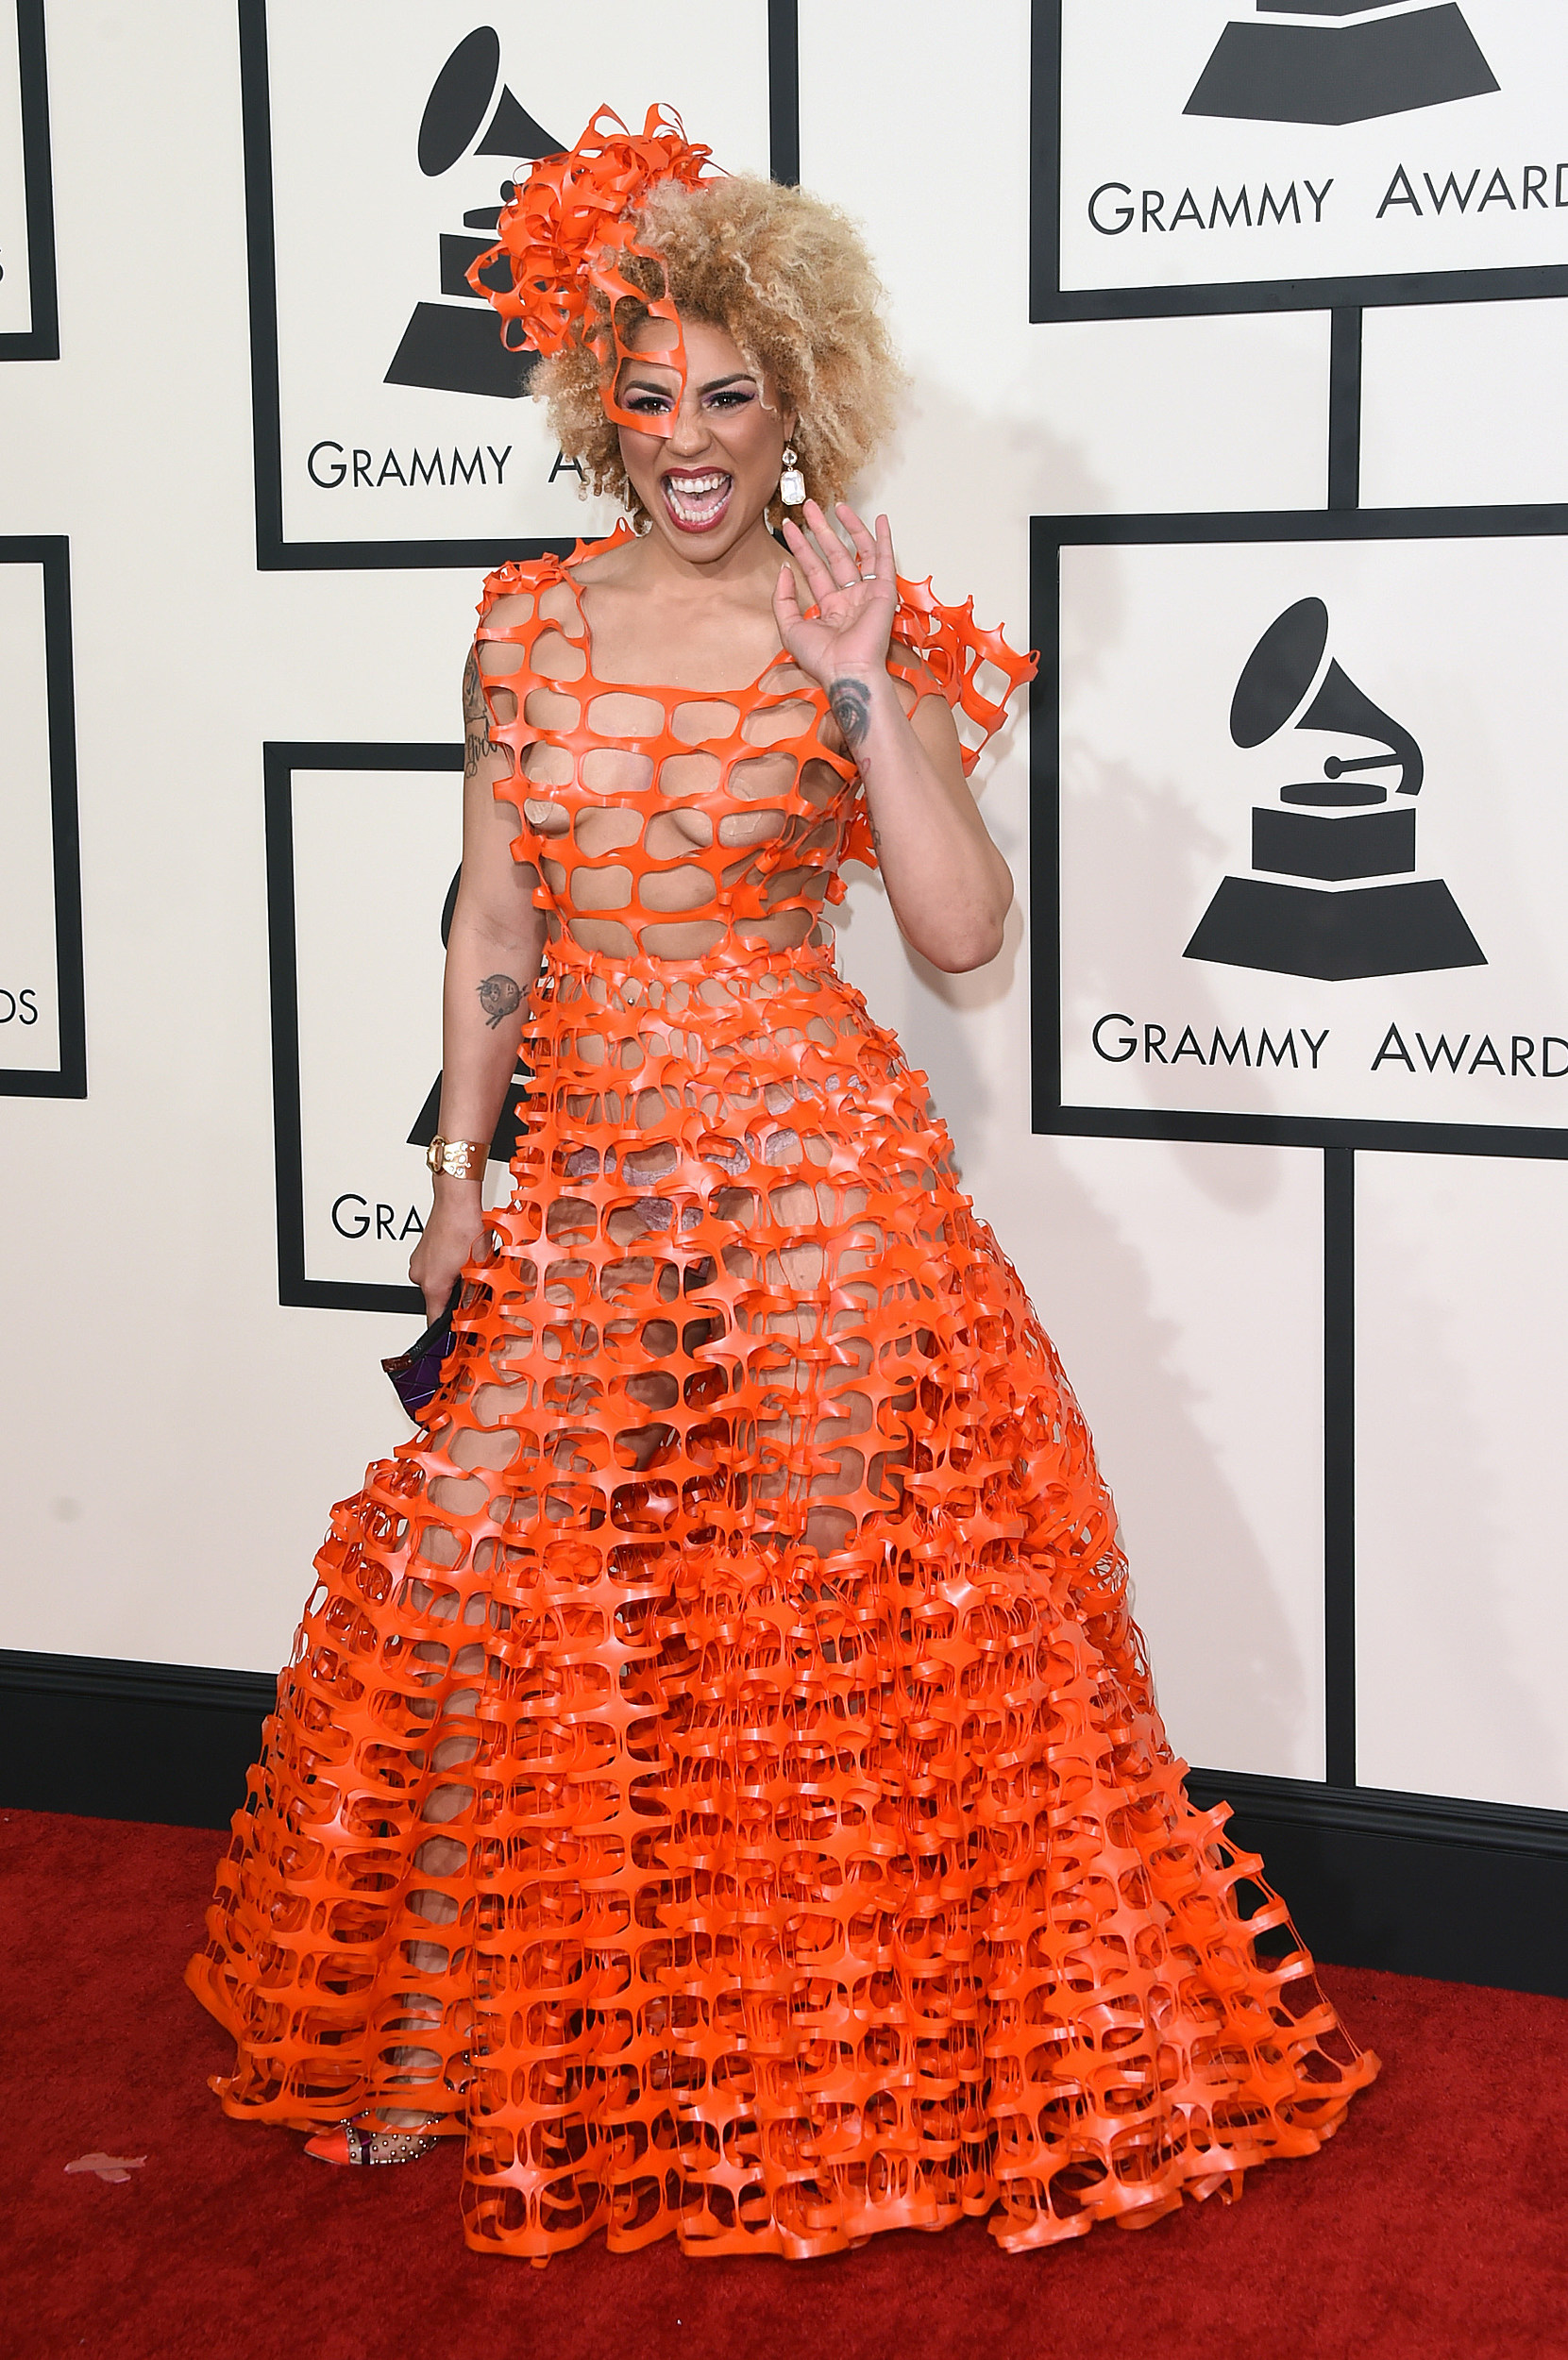 joy villa - photo #22